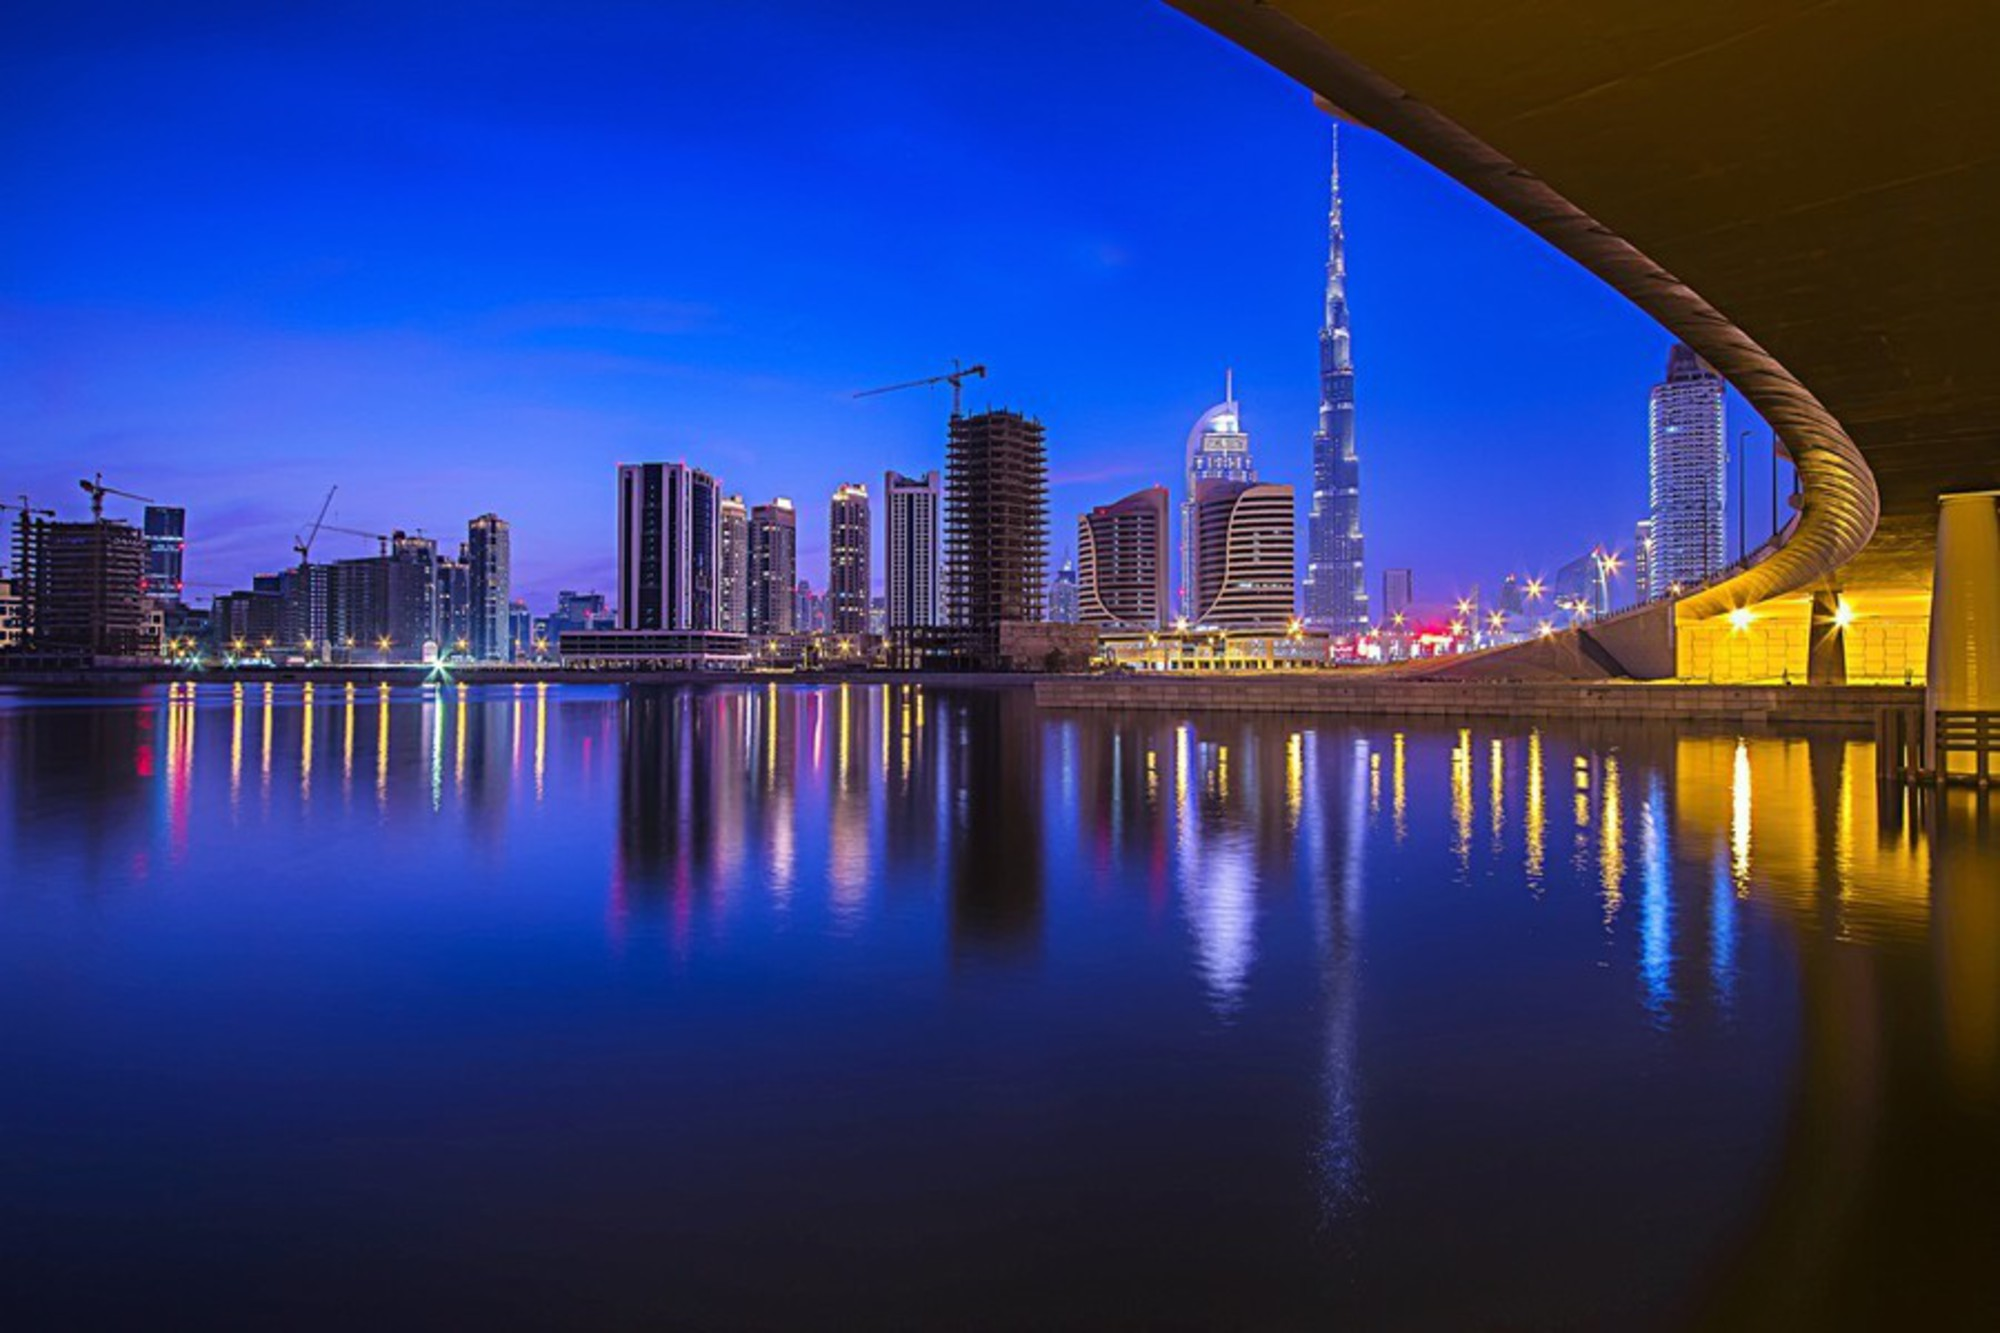 Beautiful Wallpaper Night Dubai - cityscapes-night-dubai-2000x1333-wallpaper  Pic-367061.jpg